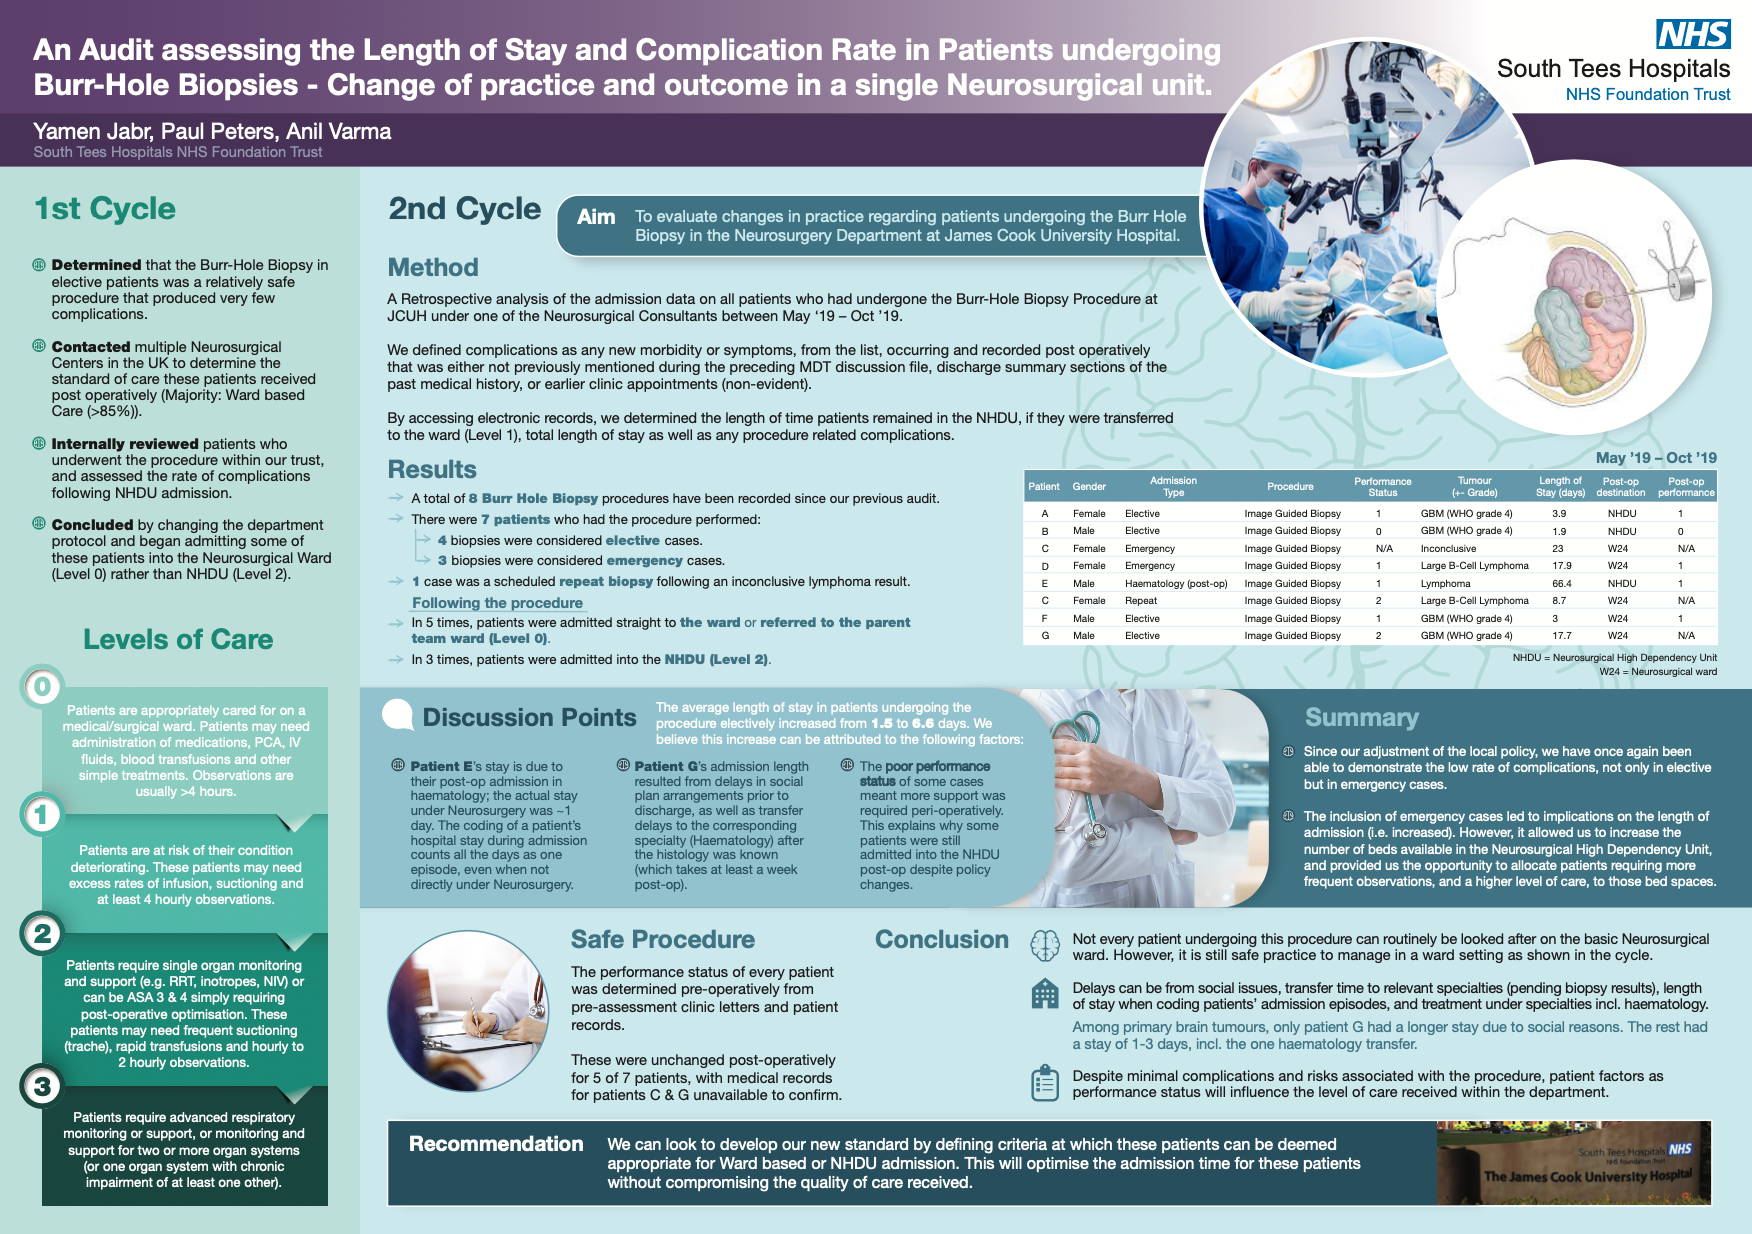 A Combined Audit assessing the Length of Stay and Complication Rate in Patients undergoing Burr-Hole Biopsies & The comparison with Standard of Practice in other Neurosurgical Centres in the UK: Yamen Jabr and Paul Peters